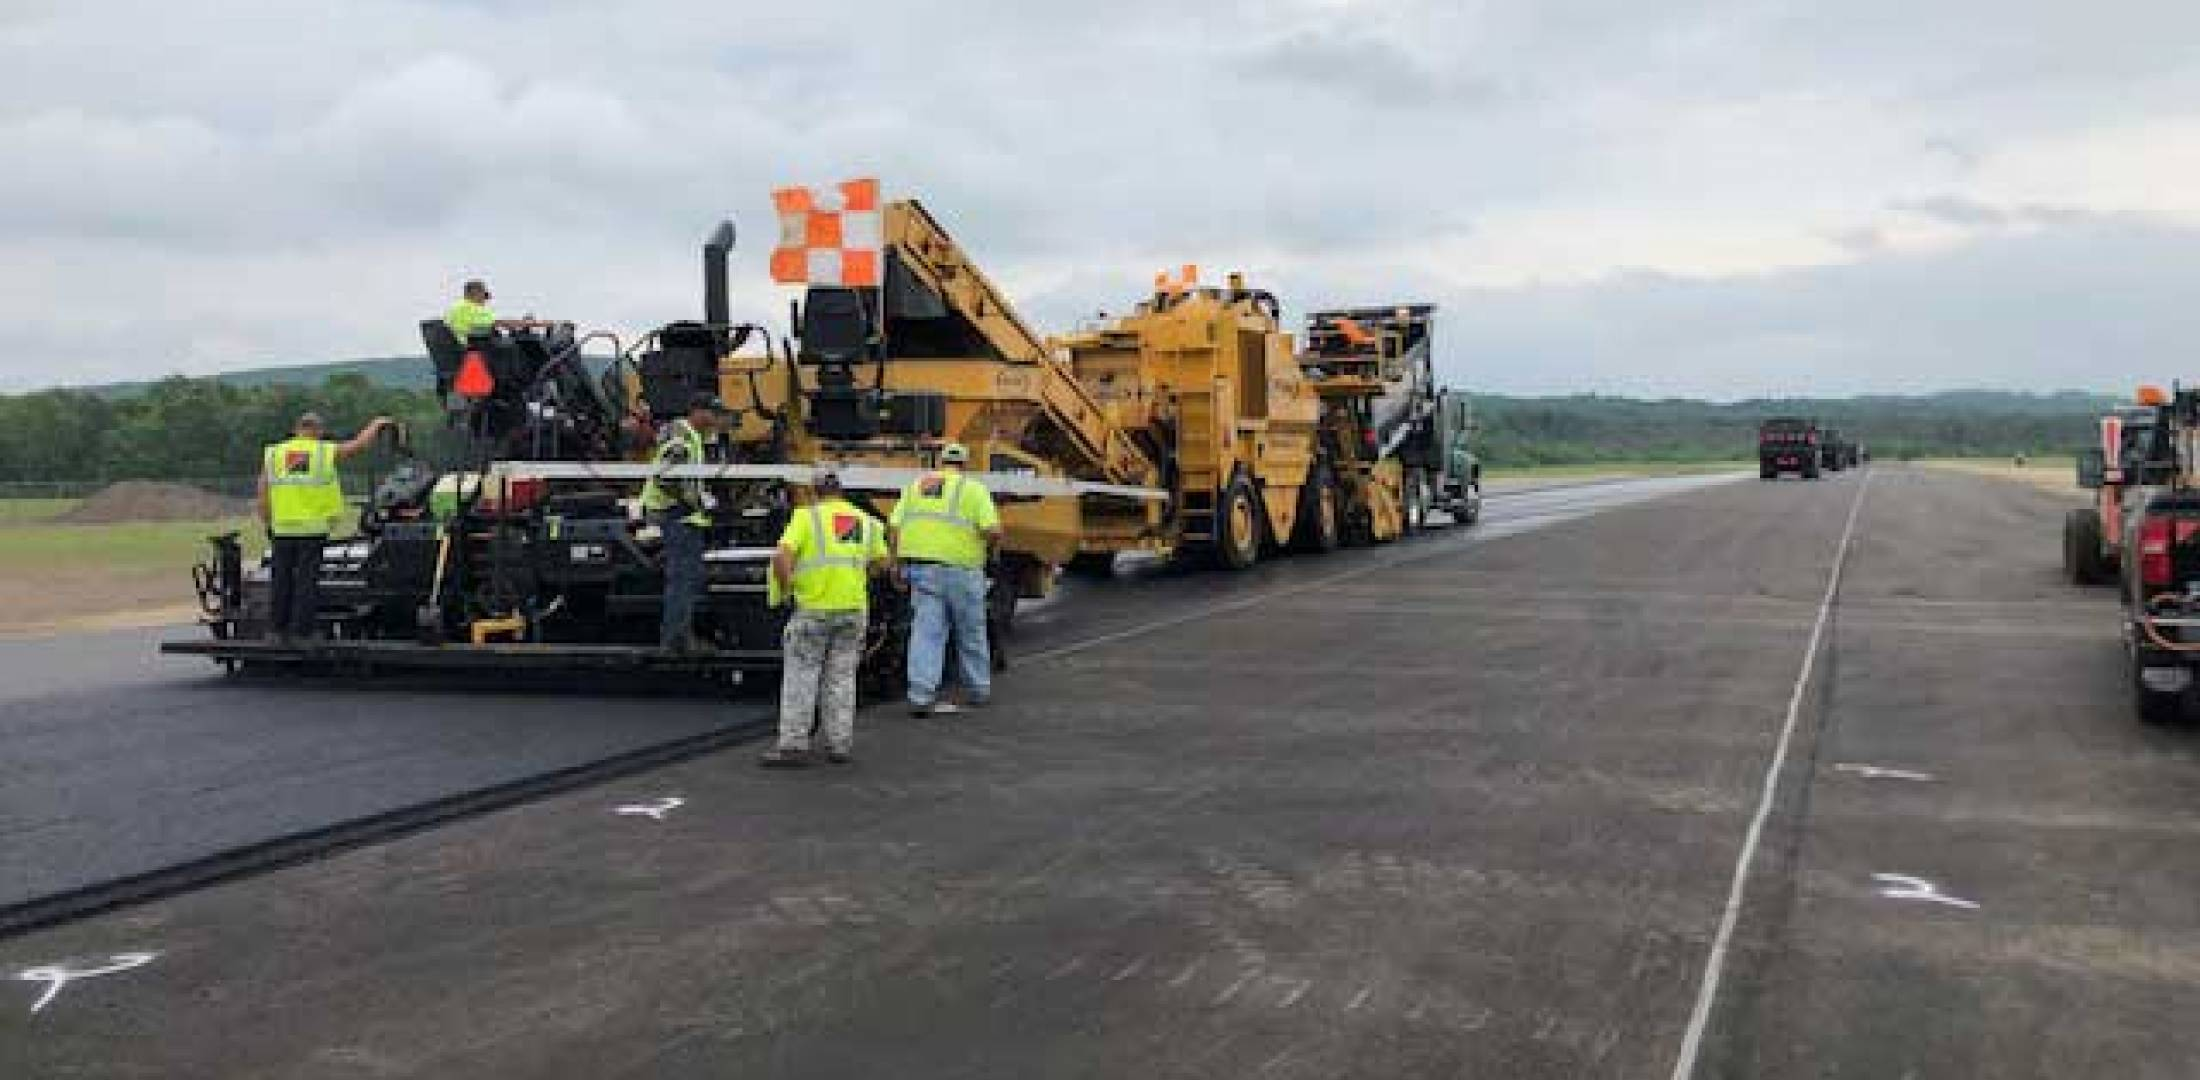 runway work at BAF